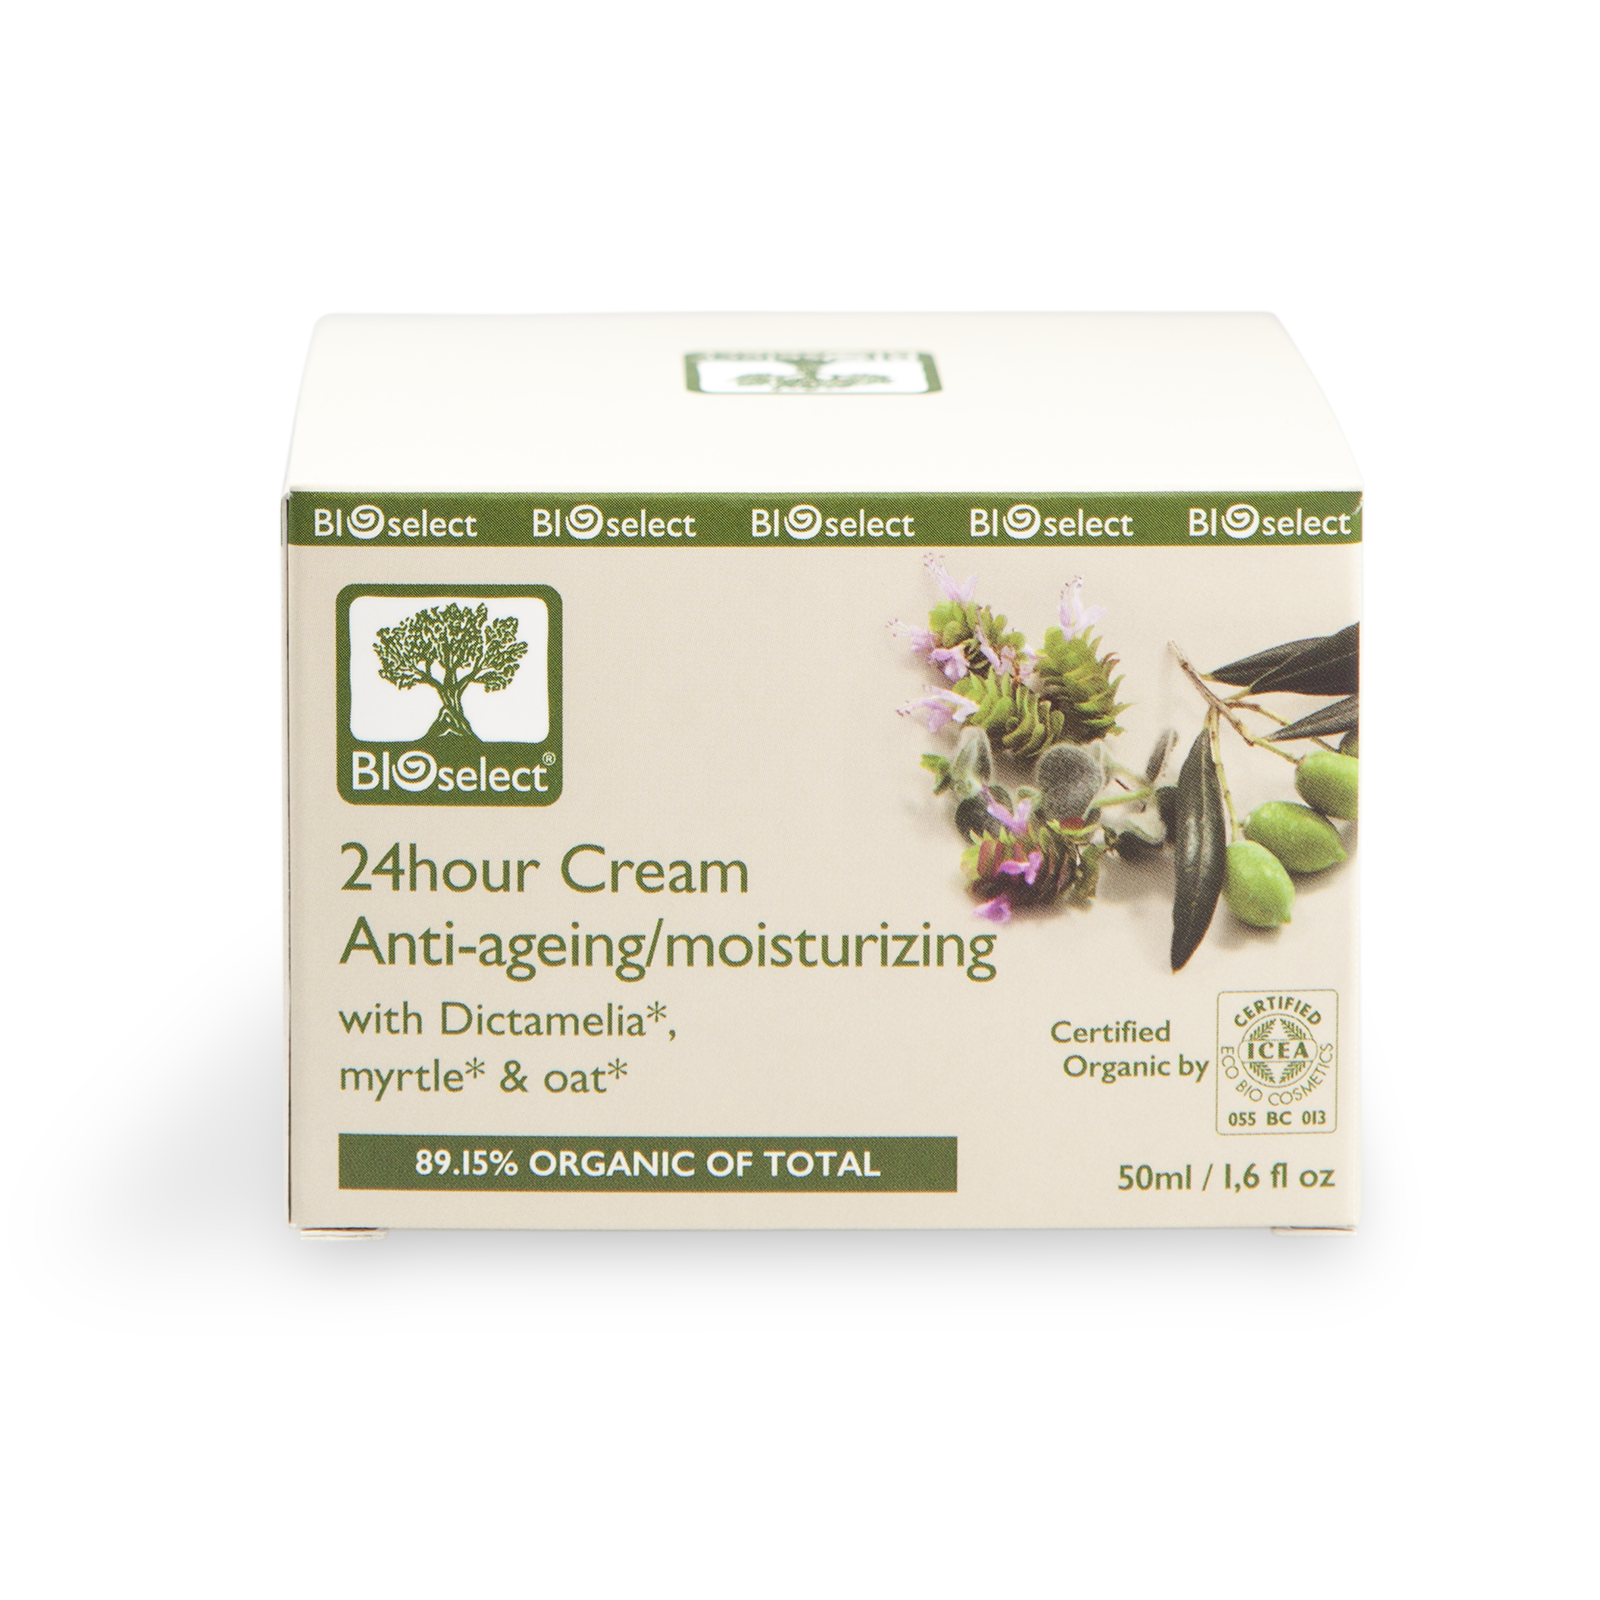 Bioselect 24hour Cream Anti-ageing/moisturizing